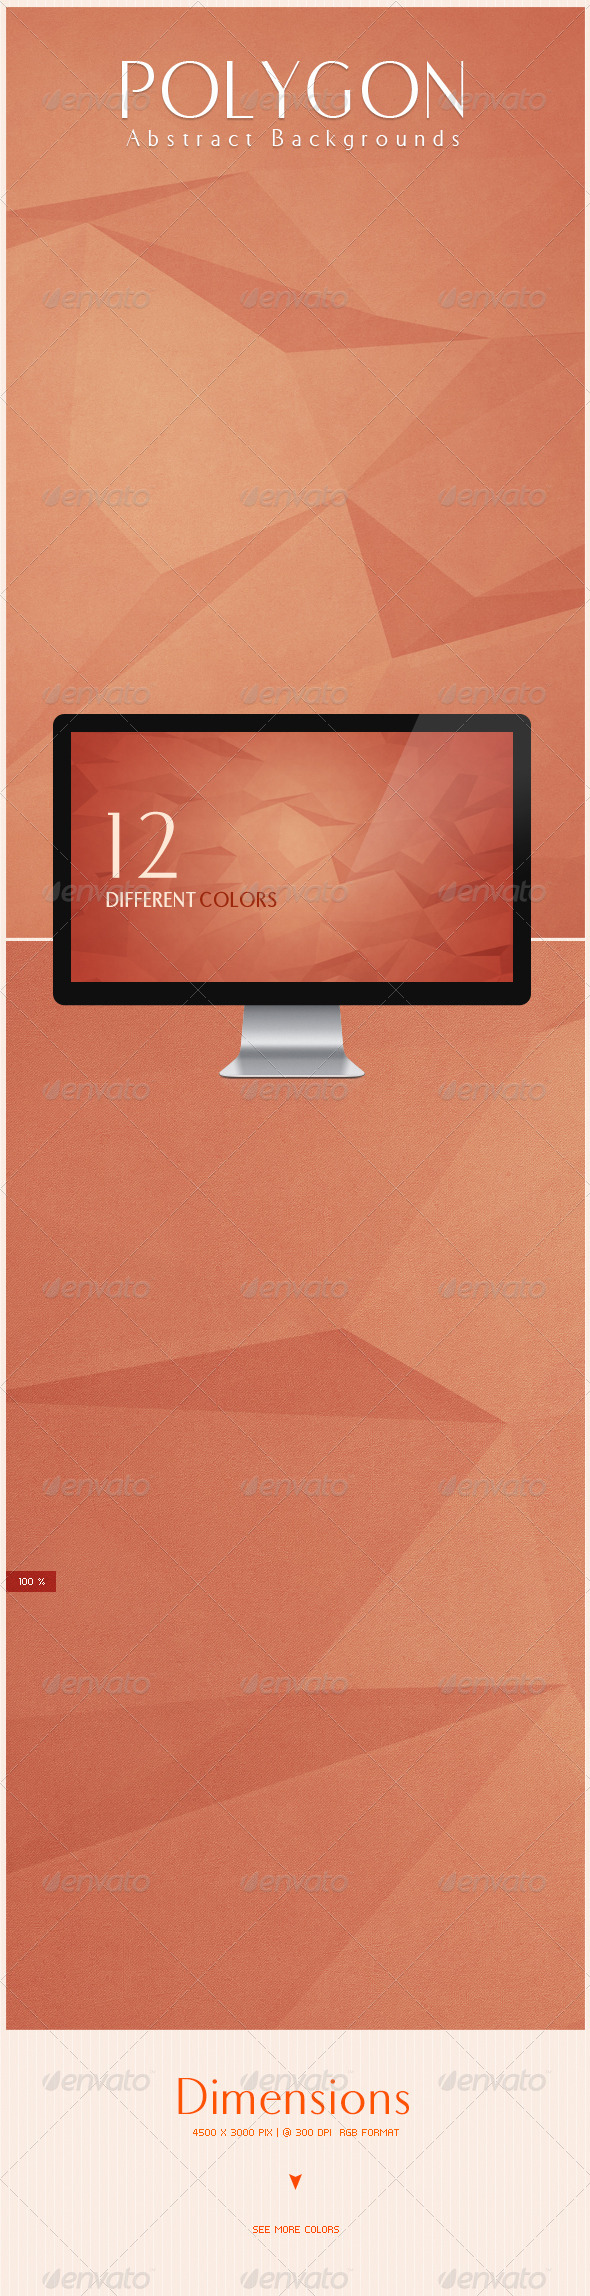 GraphicRiver Polygon Abstract Backgrounds 6491153